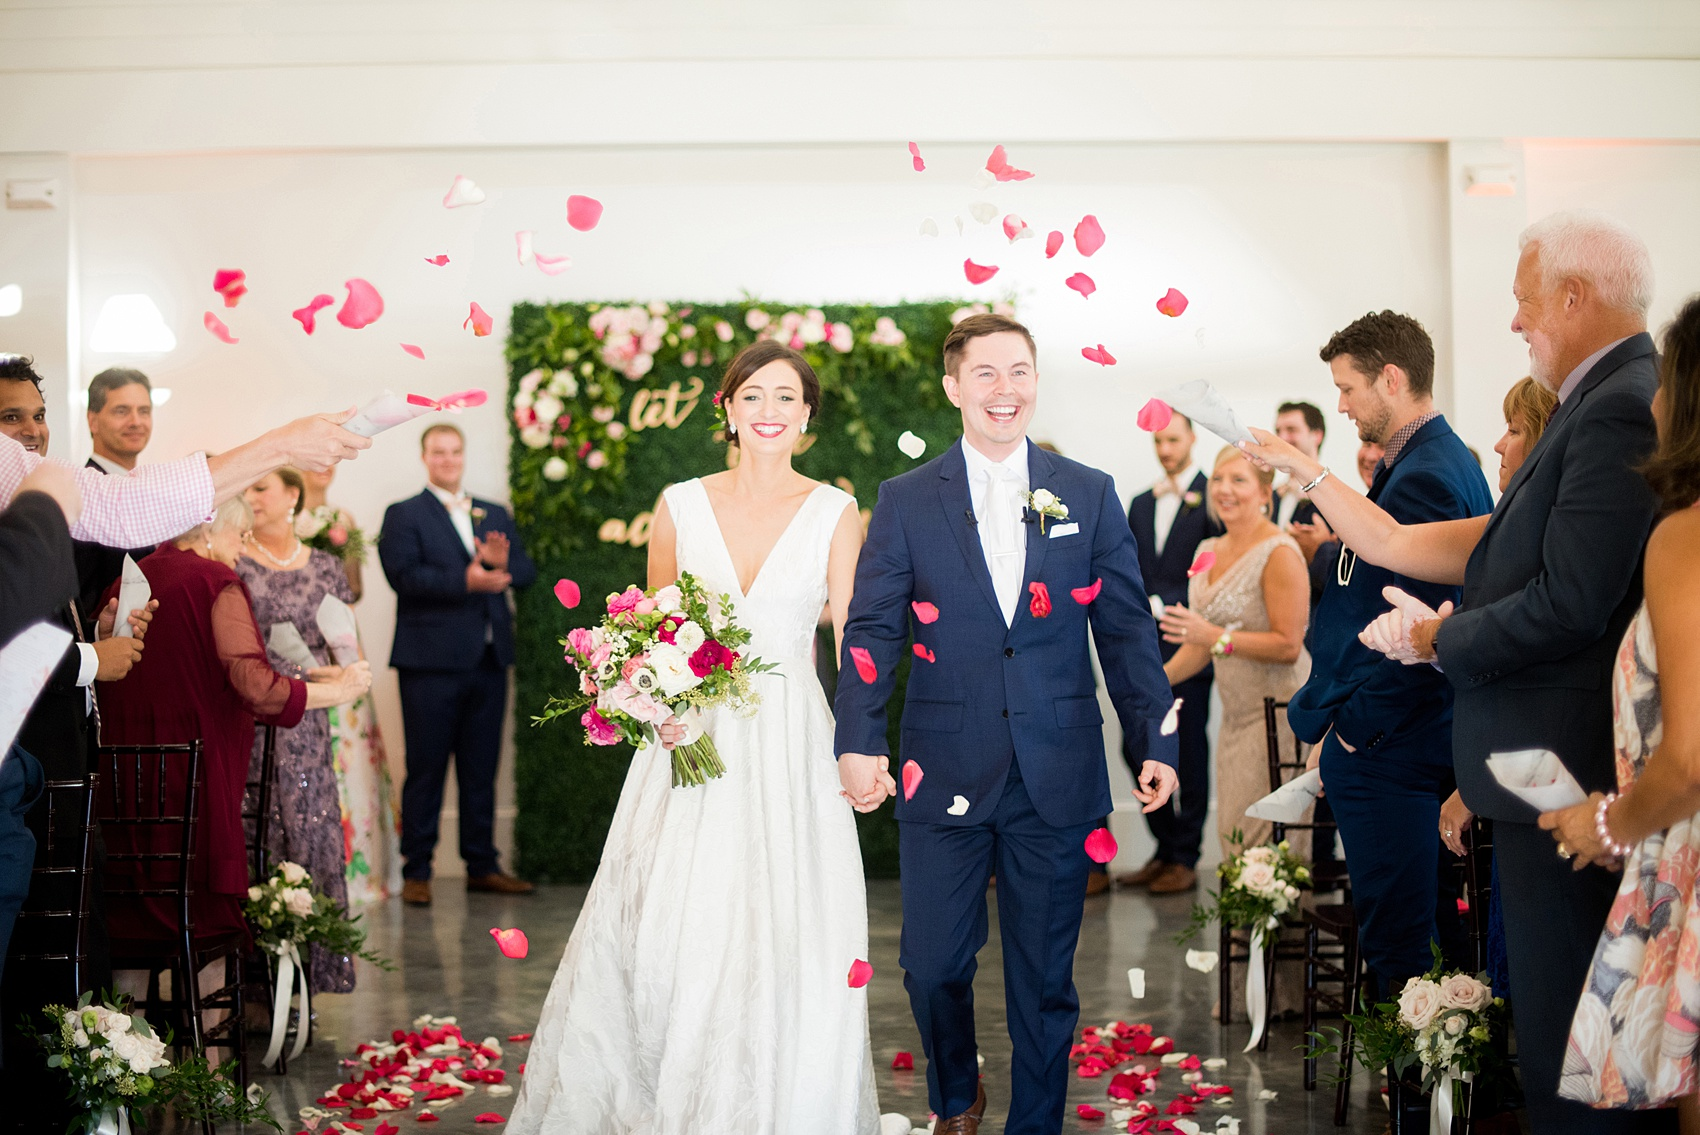 Mikkel Paige Photography pictures from a wedding at Merrimon-Wynne House in Raleigh, NC. Photo of the bride and groom after their ceremony during their petal toss.